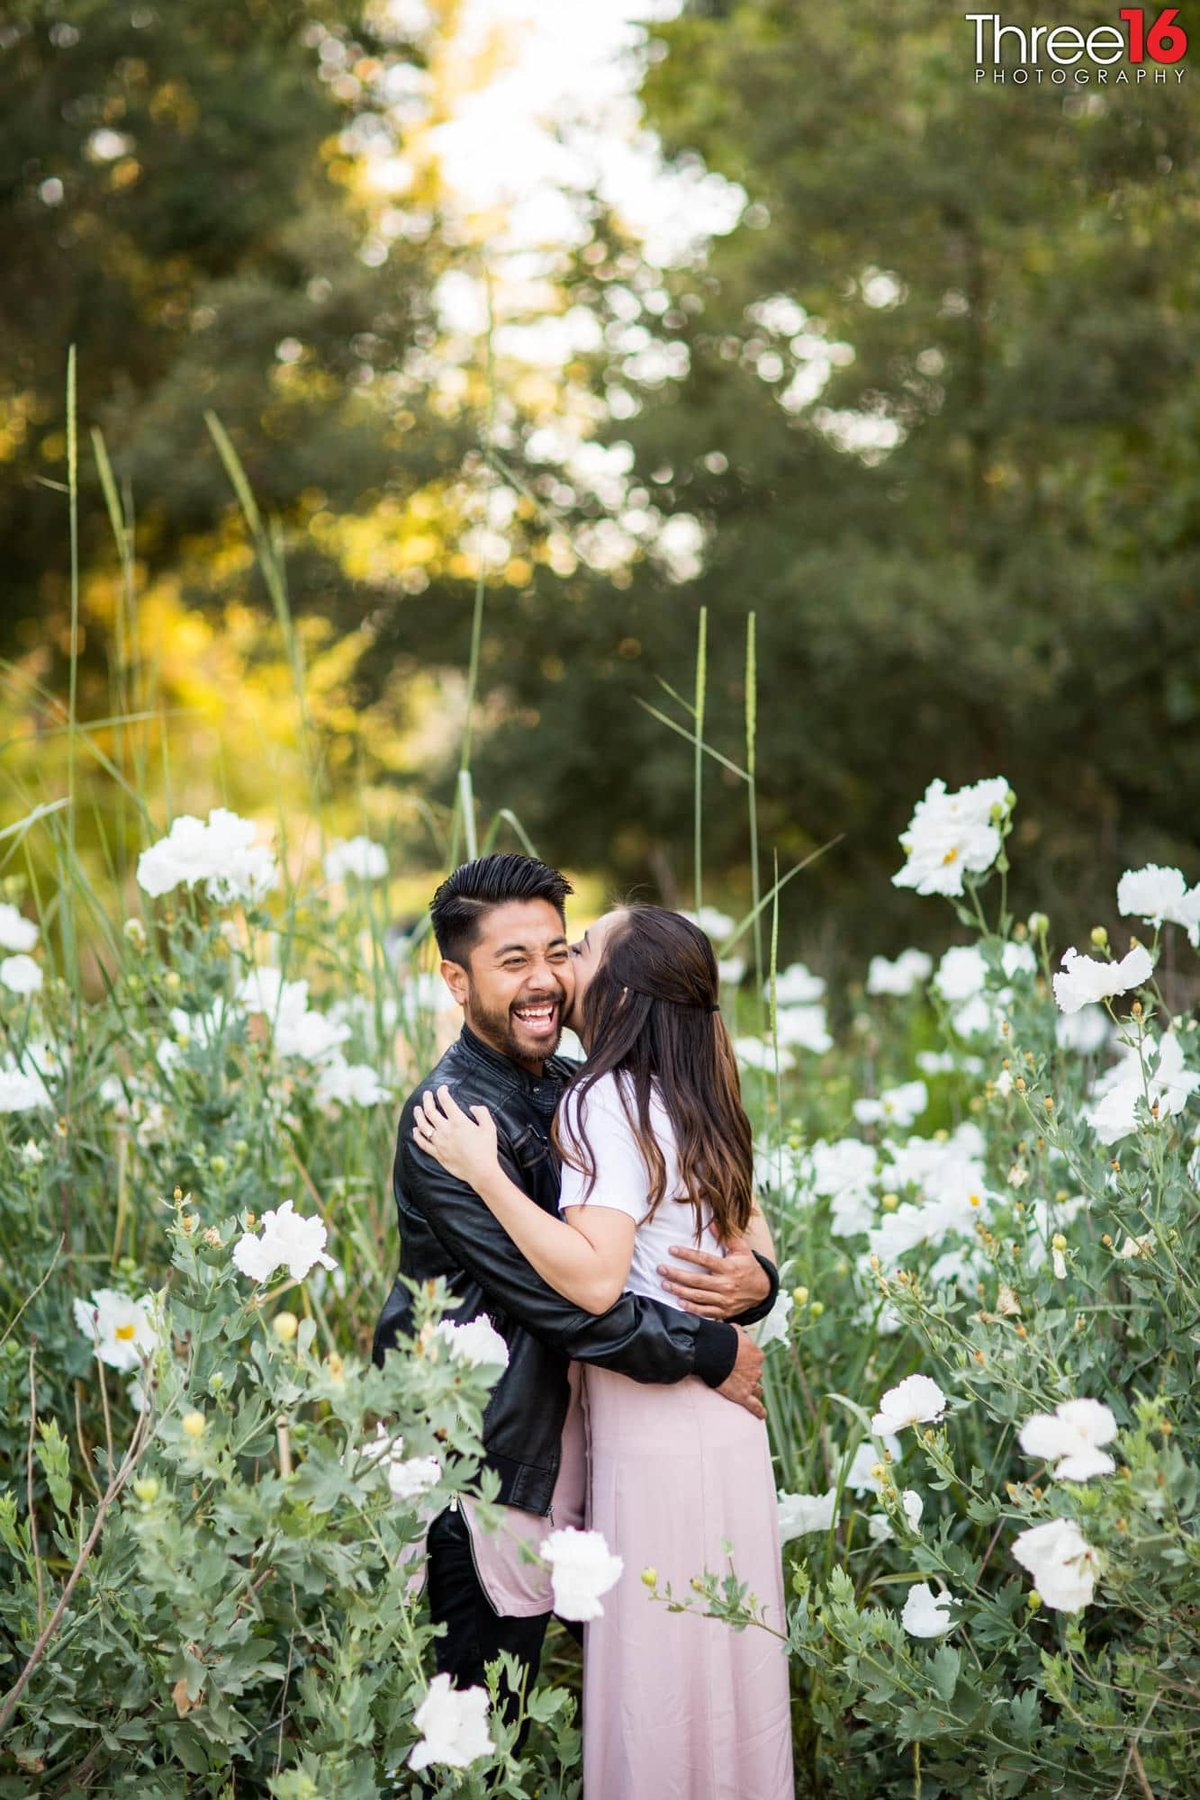 Thomas F. Riley WIlderness Park Engagement Nature Hiking Professional Photographer Orange County